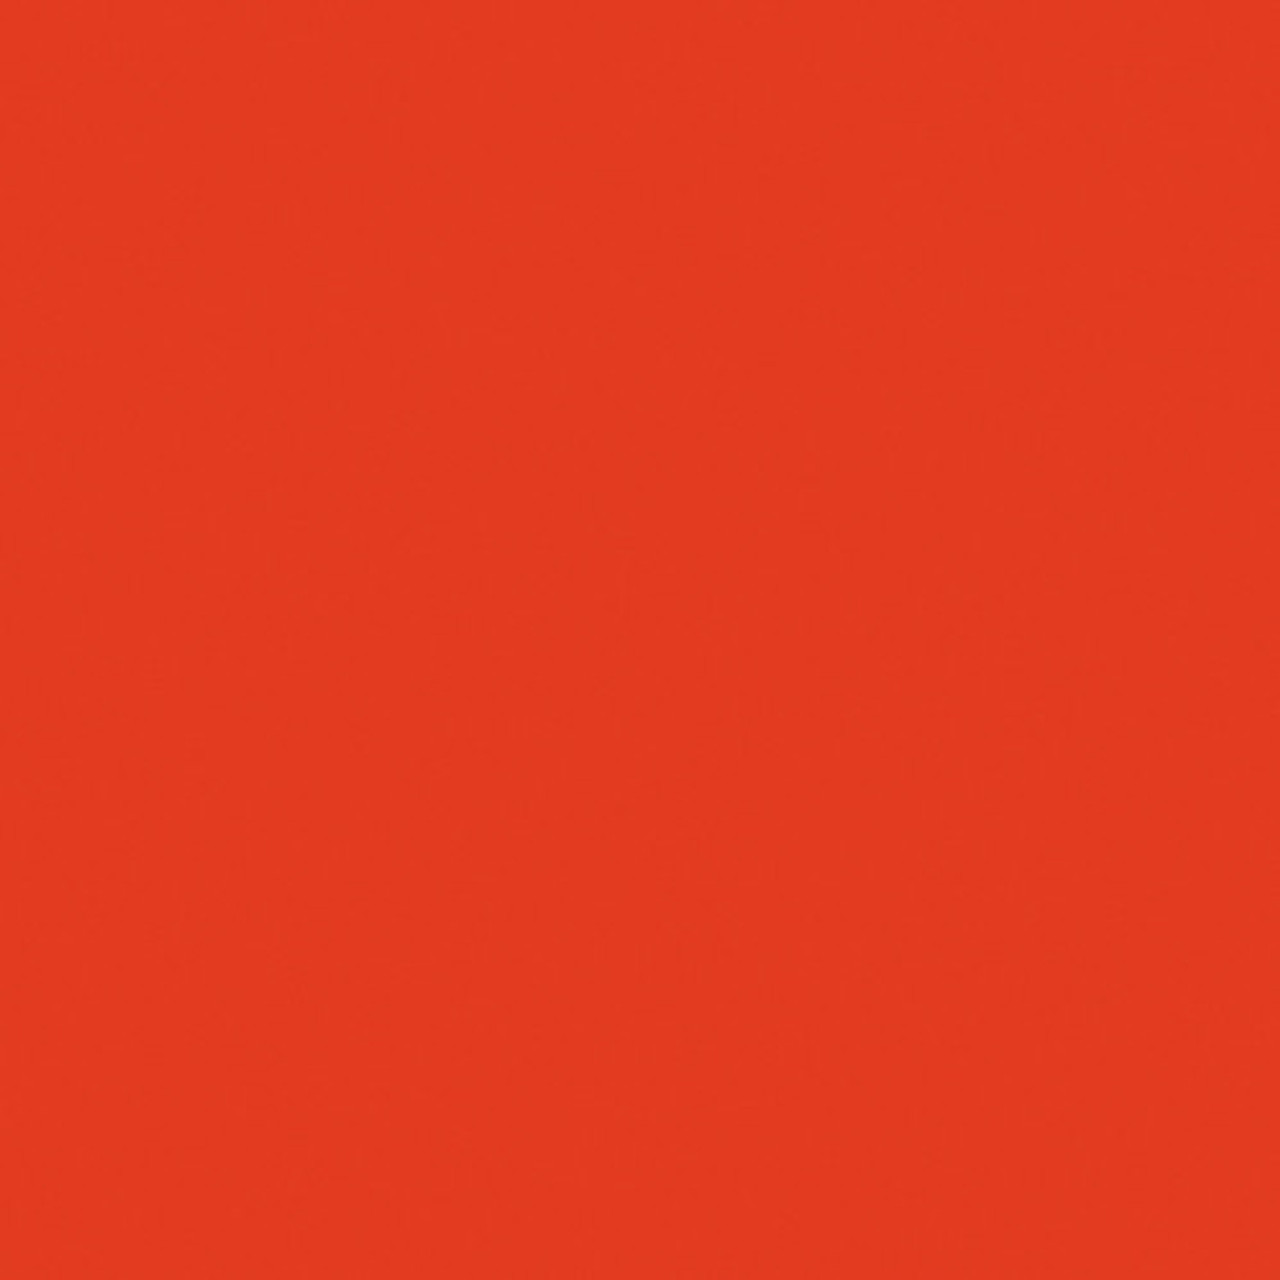 """#4690 Rosco Gels Roscolux CalColor 90 Red, 20x24"""""""